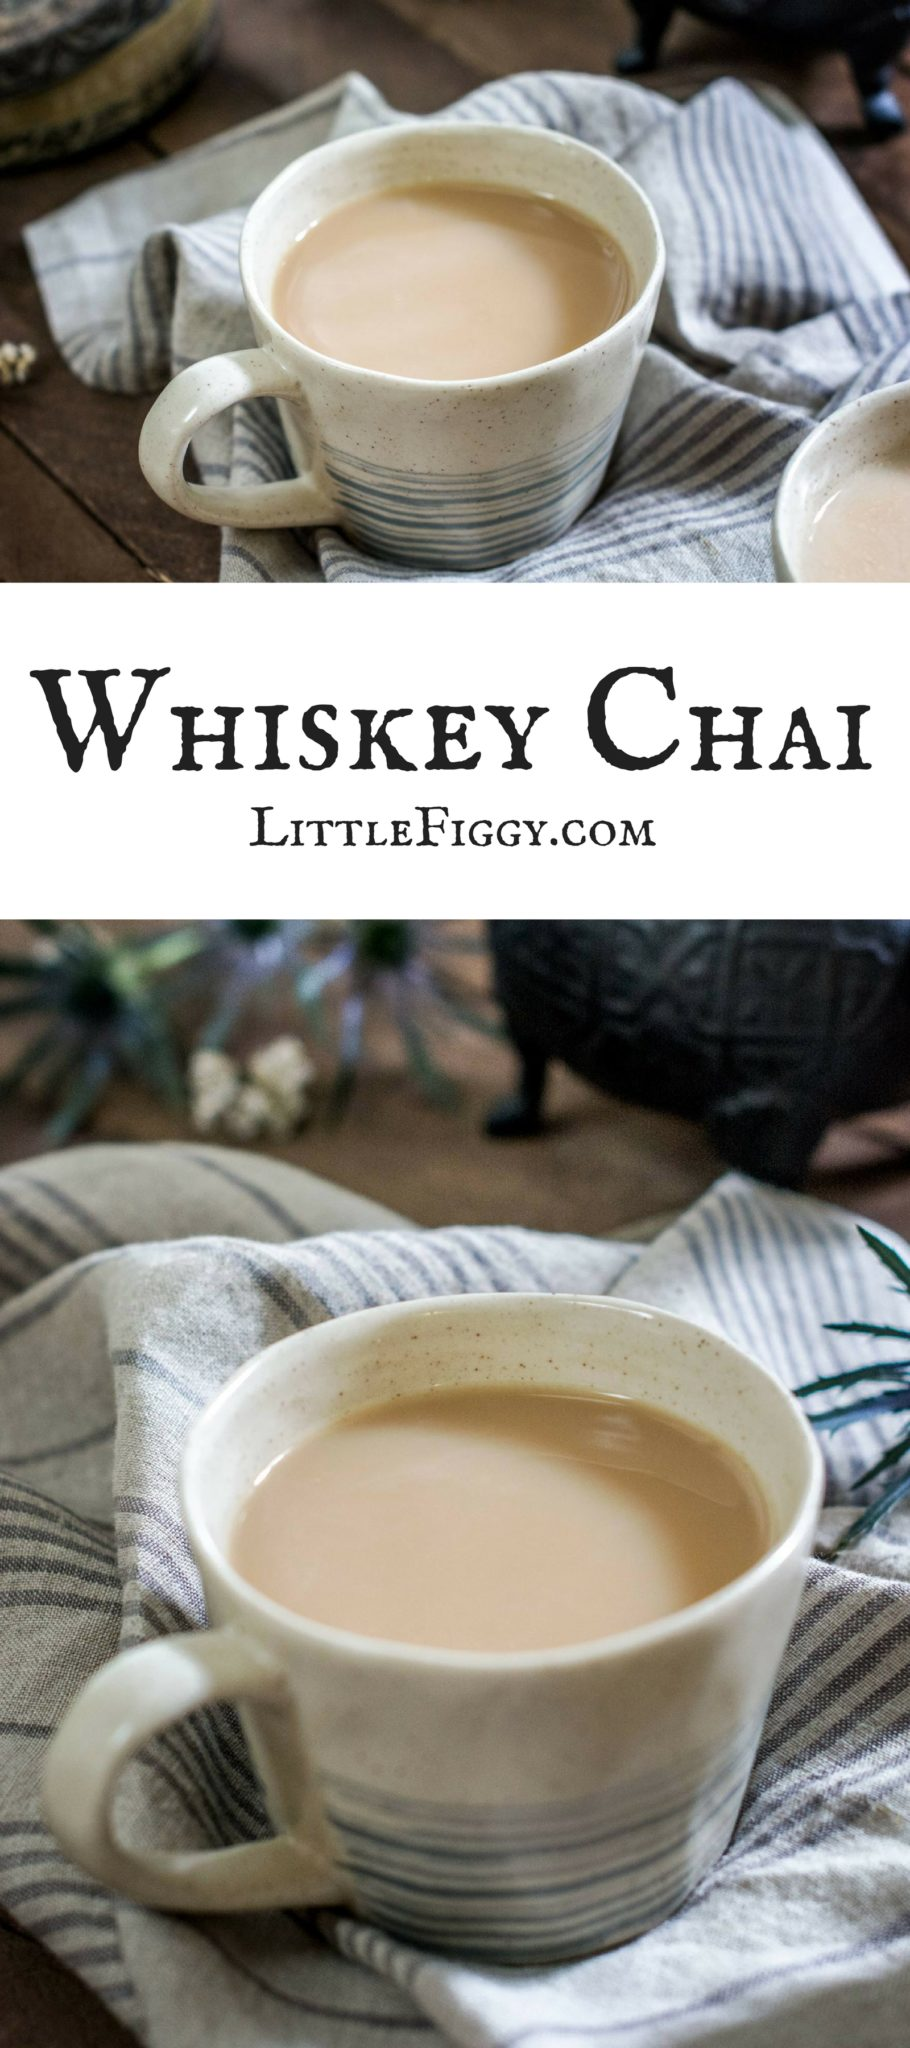 Whiskey Chai To Keep You Warm Little Figgy Food